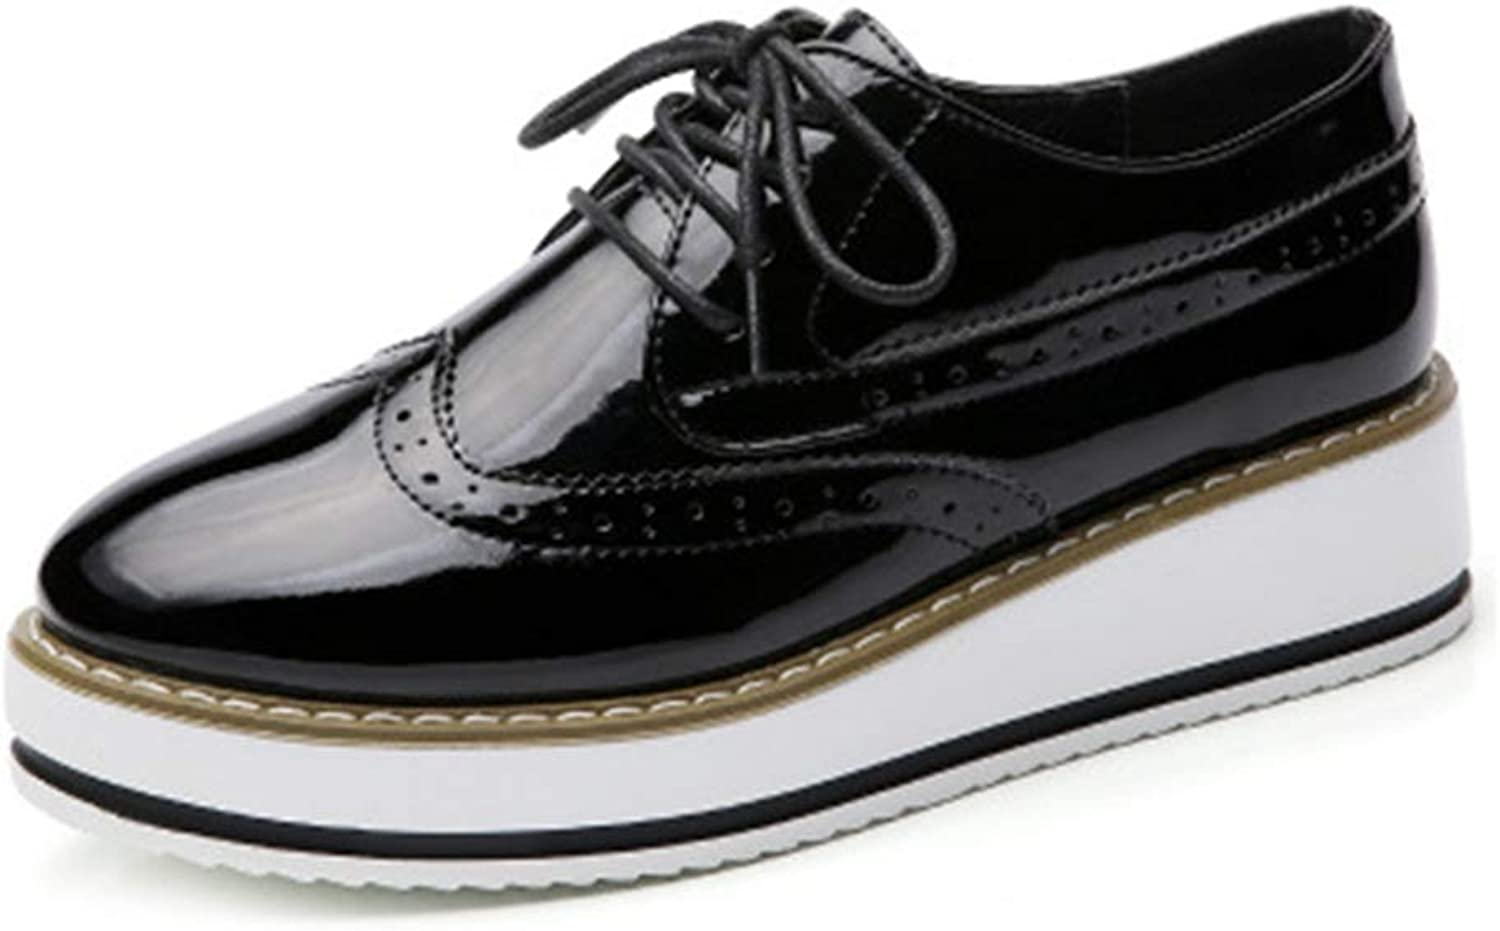 GIY Womens Chunky Platform Oxford shoes Wingtip Lace Up Mid Heel Casual Dress Wedge Oxfords Brogues